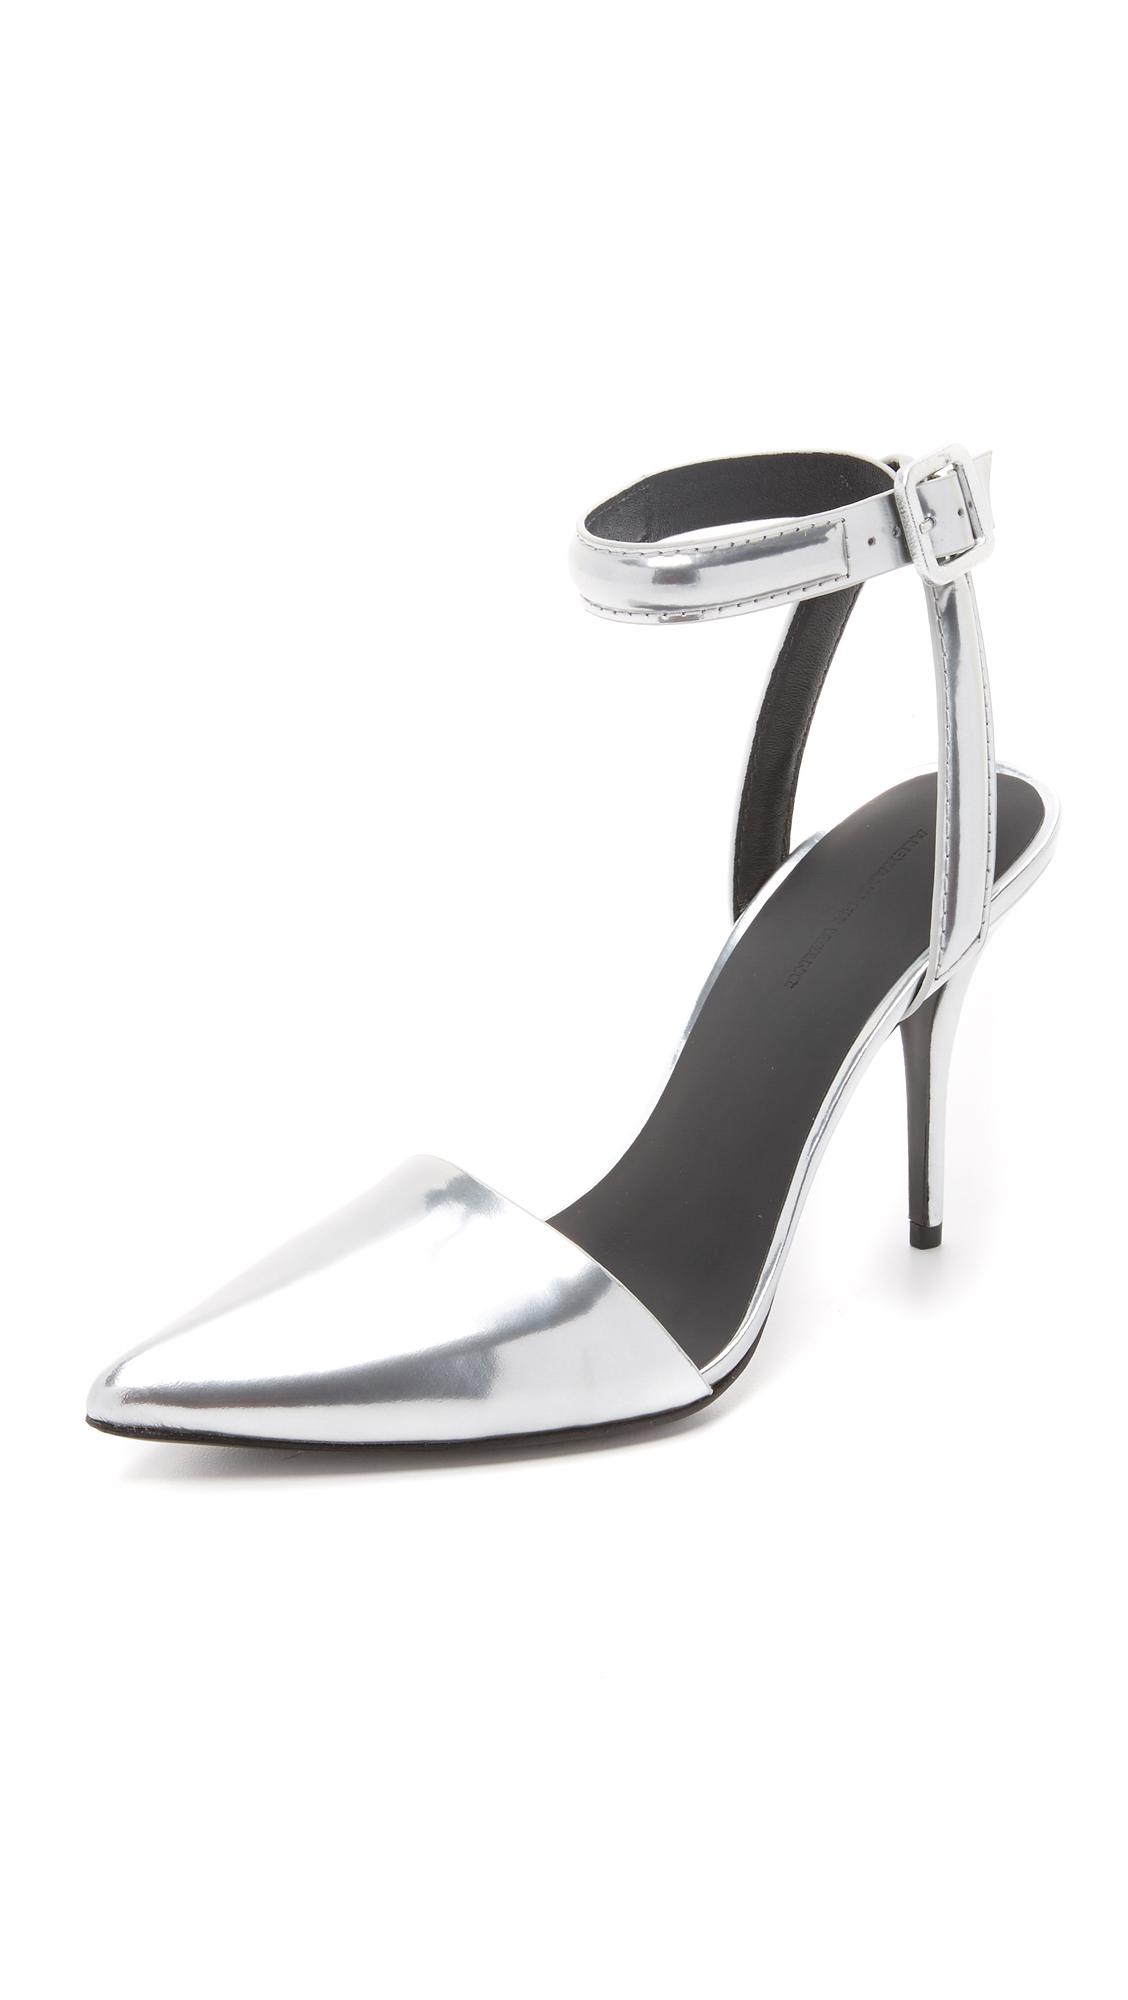 Alexander Wang From The Glossy Metallic Finish To The Sharp Pointed Toe, Th In Silver